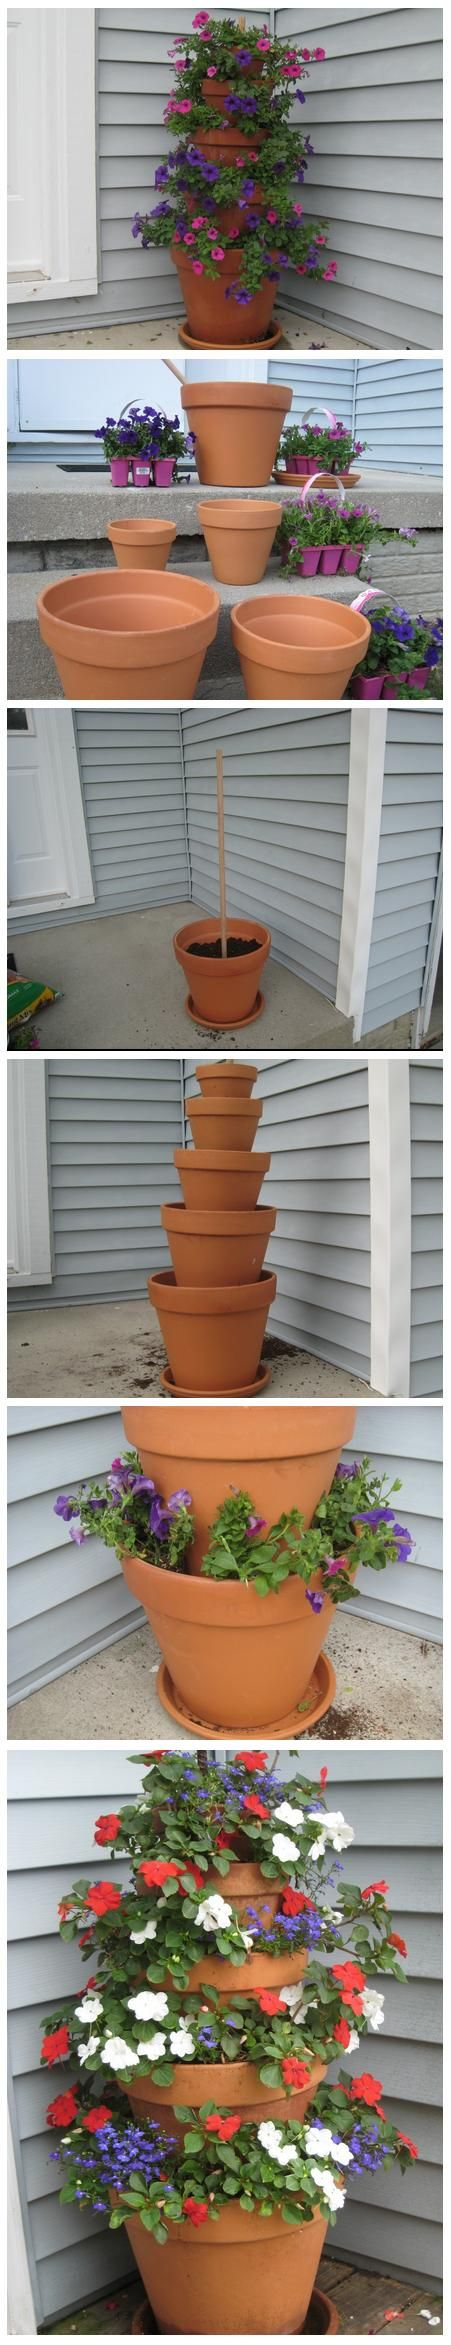 Terra Cotta Pot Flower Tower with Annuals  super cute! Herbs would be fun too.